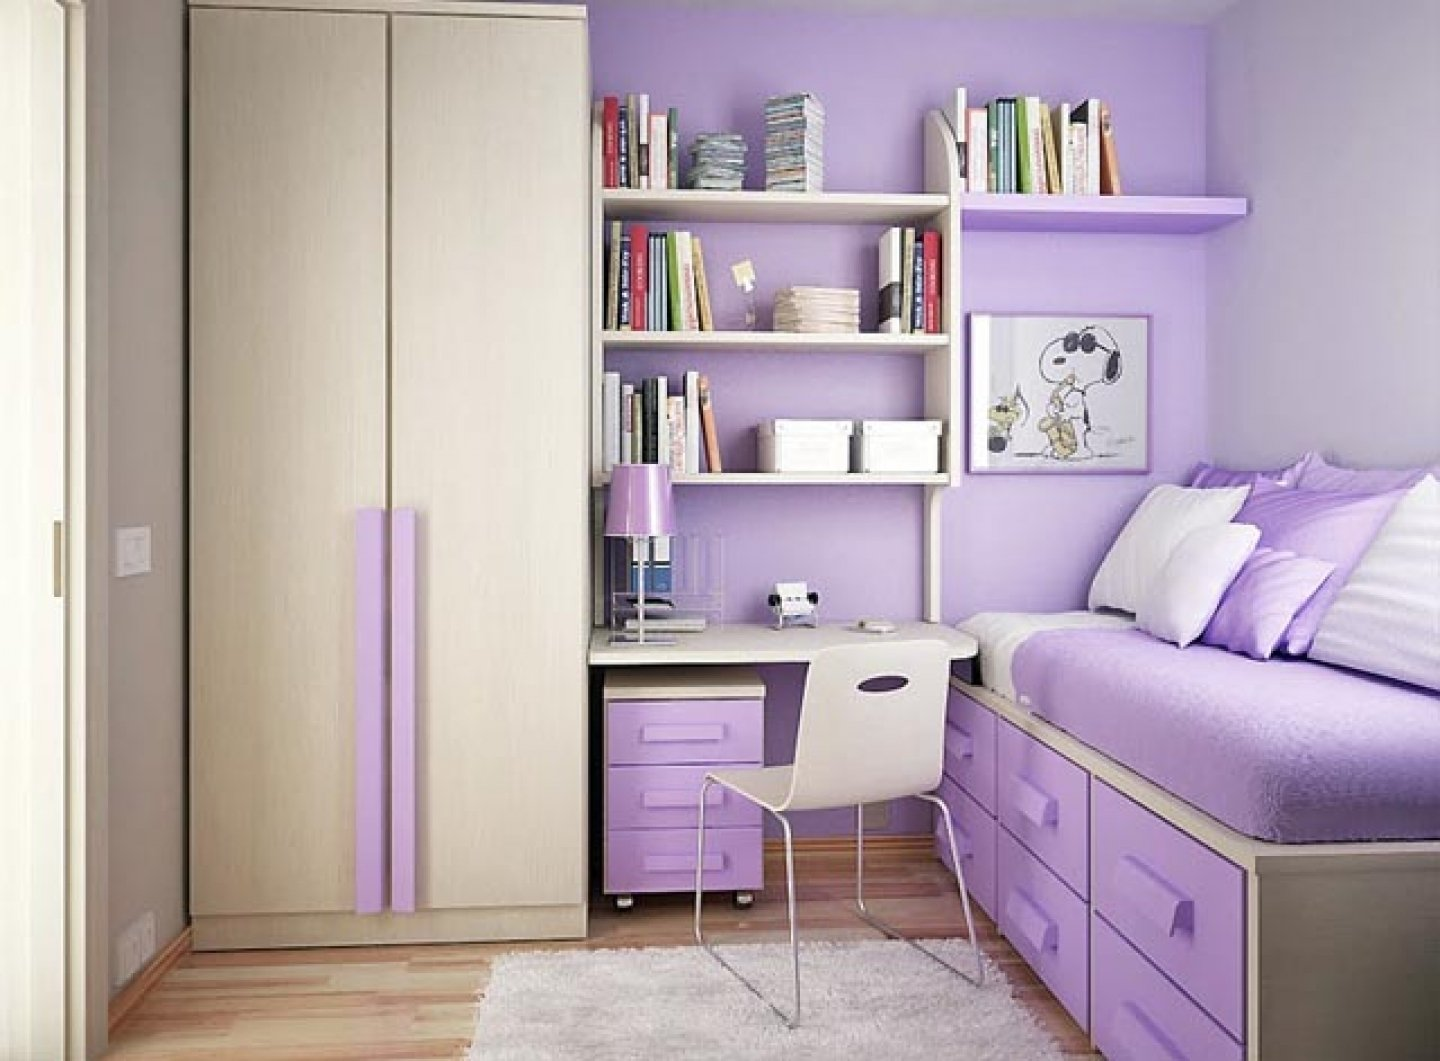 10 Pretty Teenage Bedroom Ideas For Small Rooms awesome cute bedroom ideas for small rooms womenmisbehavin 2020